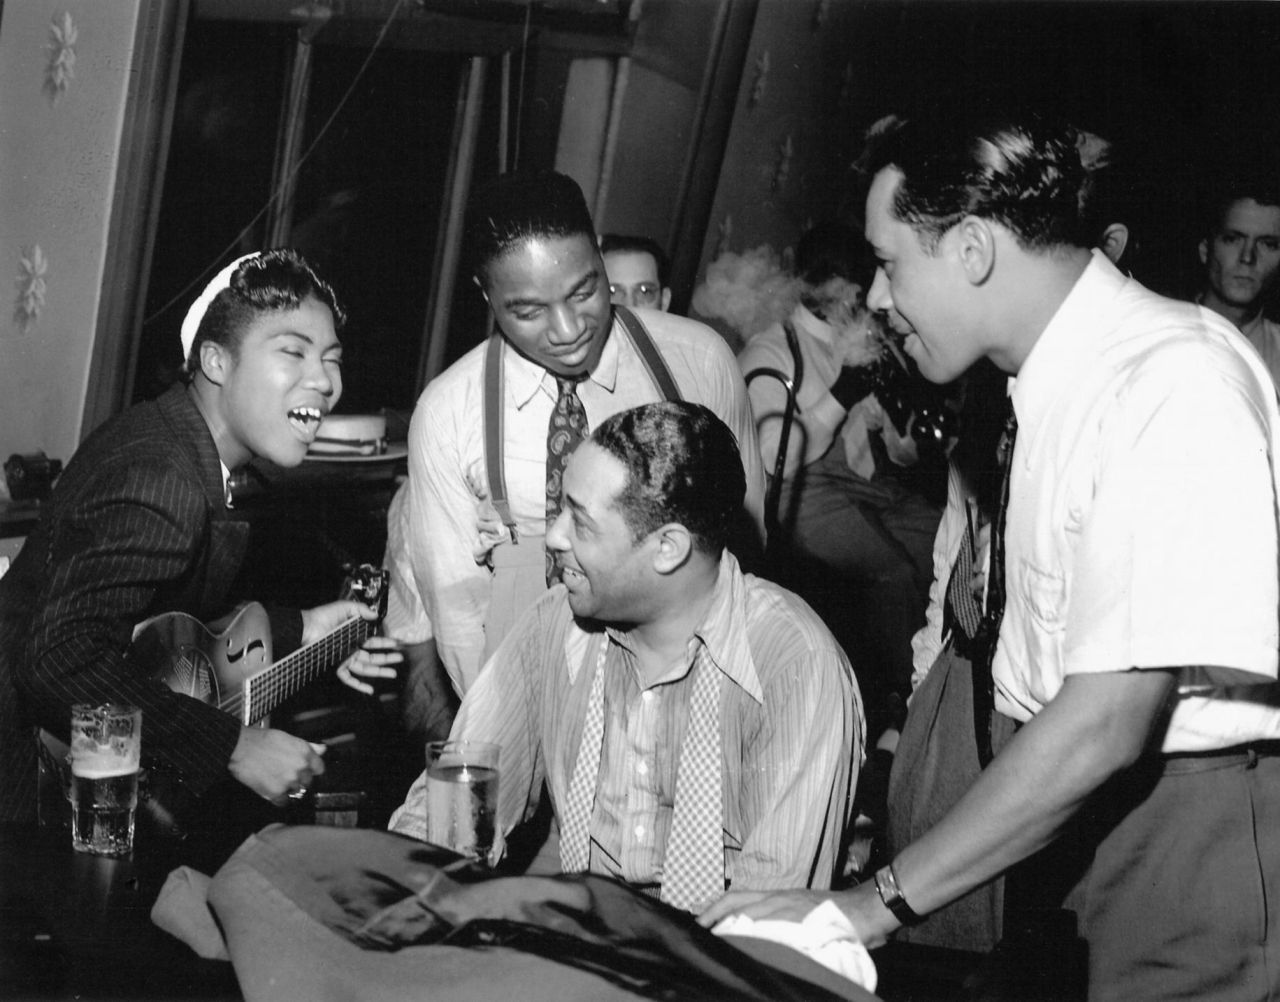 Sister Rosetta Tharpe, Duke Ellington and Cab Calloway